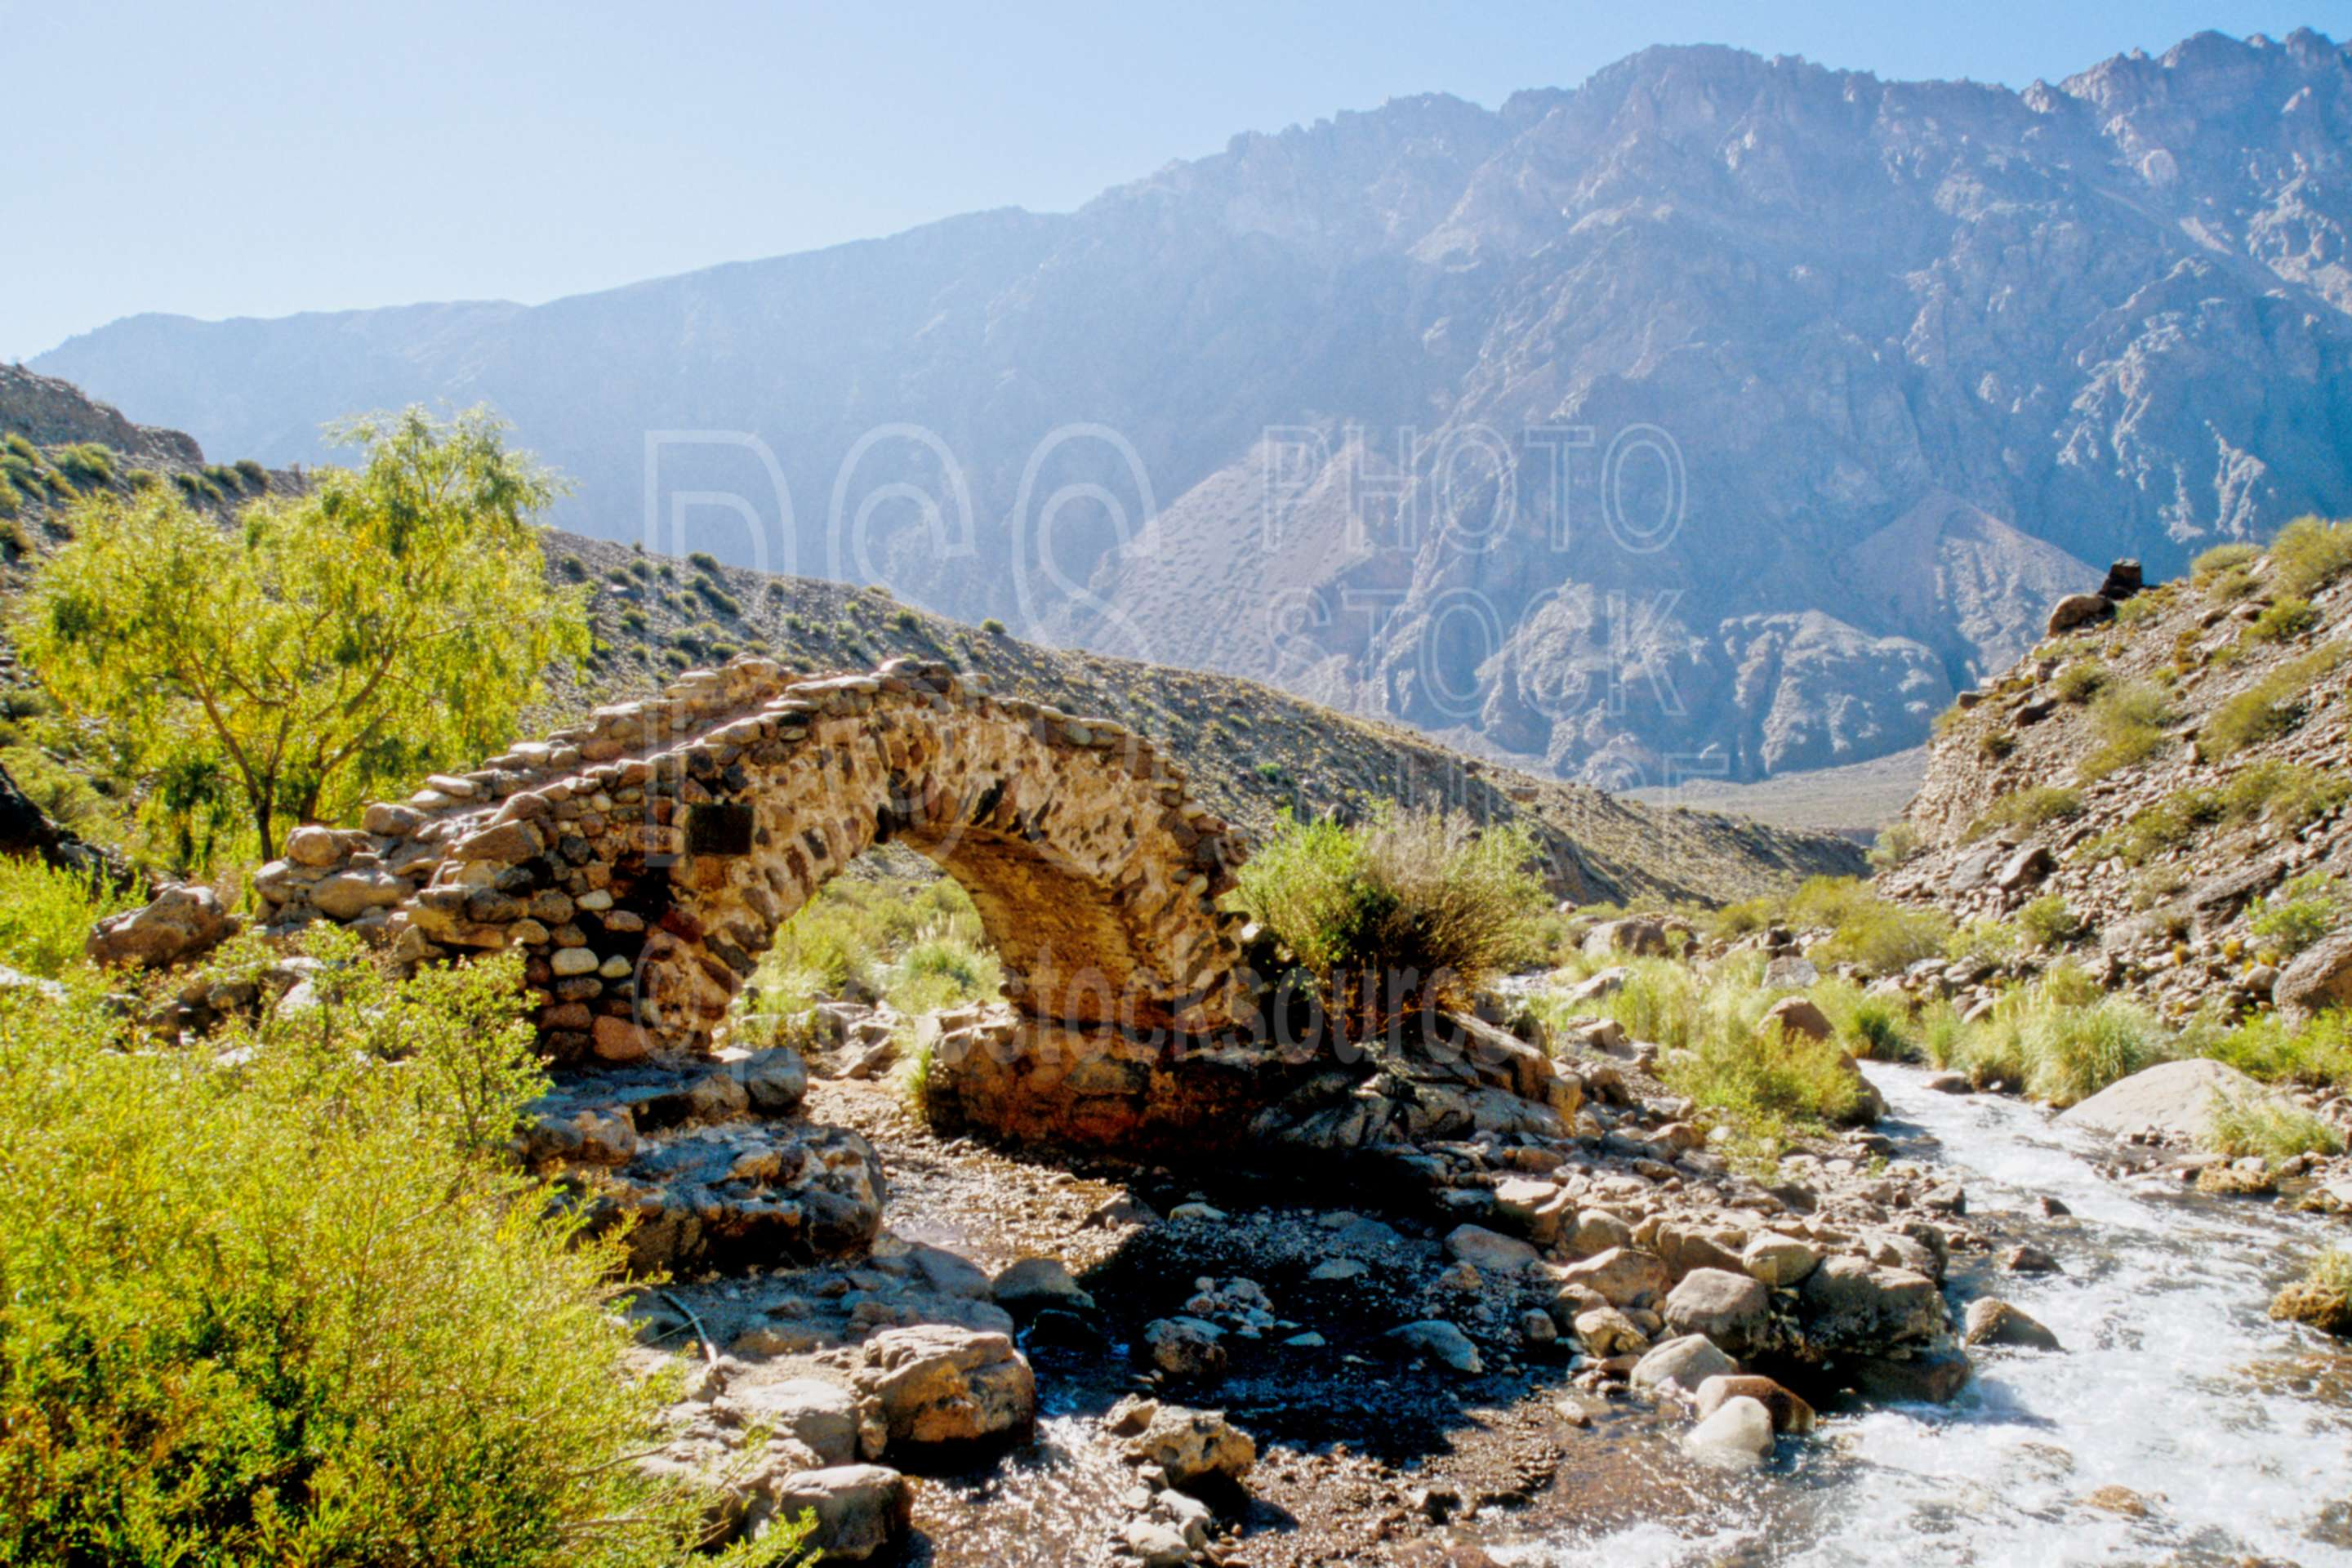 Puente de Picheuta,stone bridge,bridges,nature